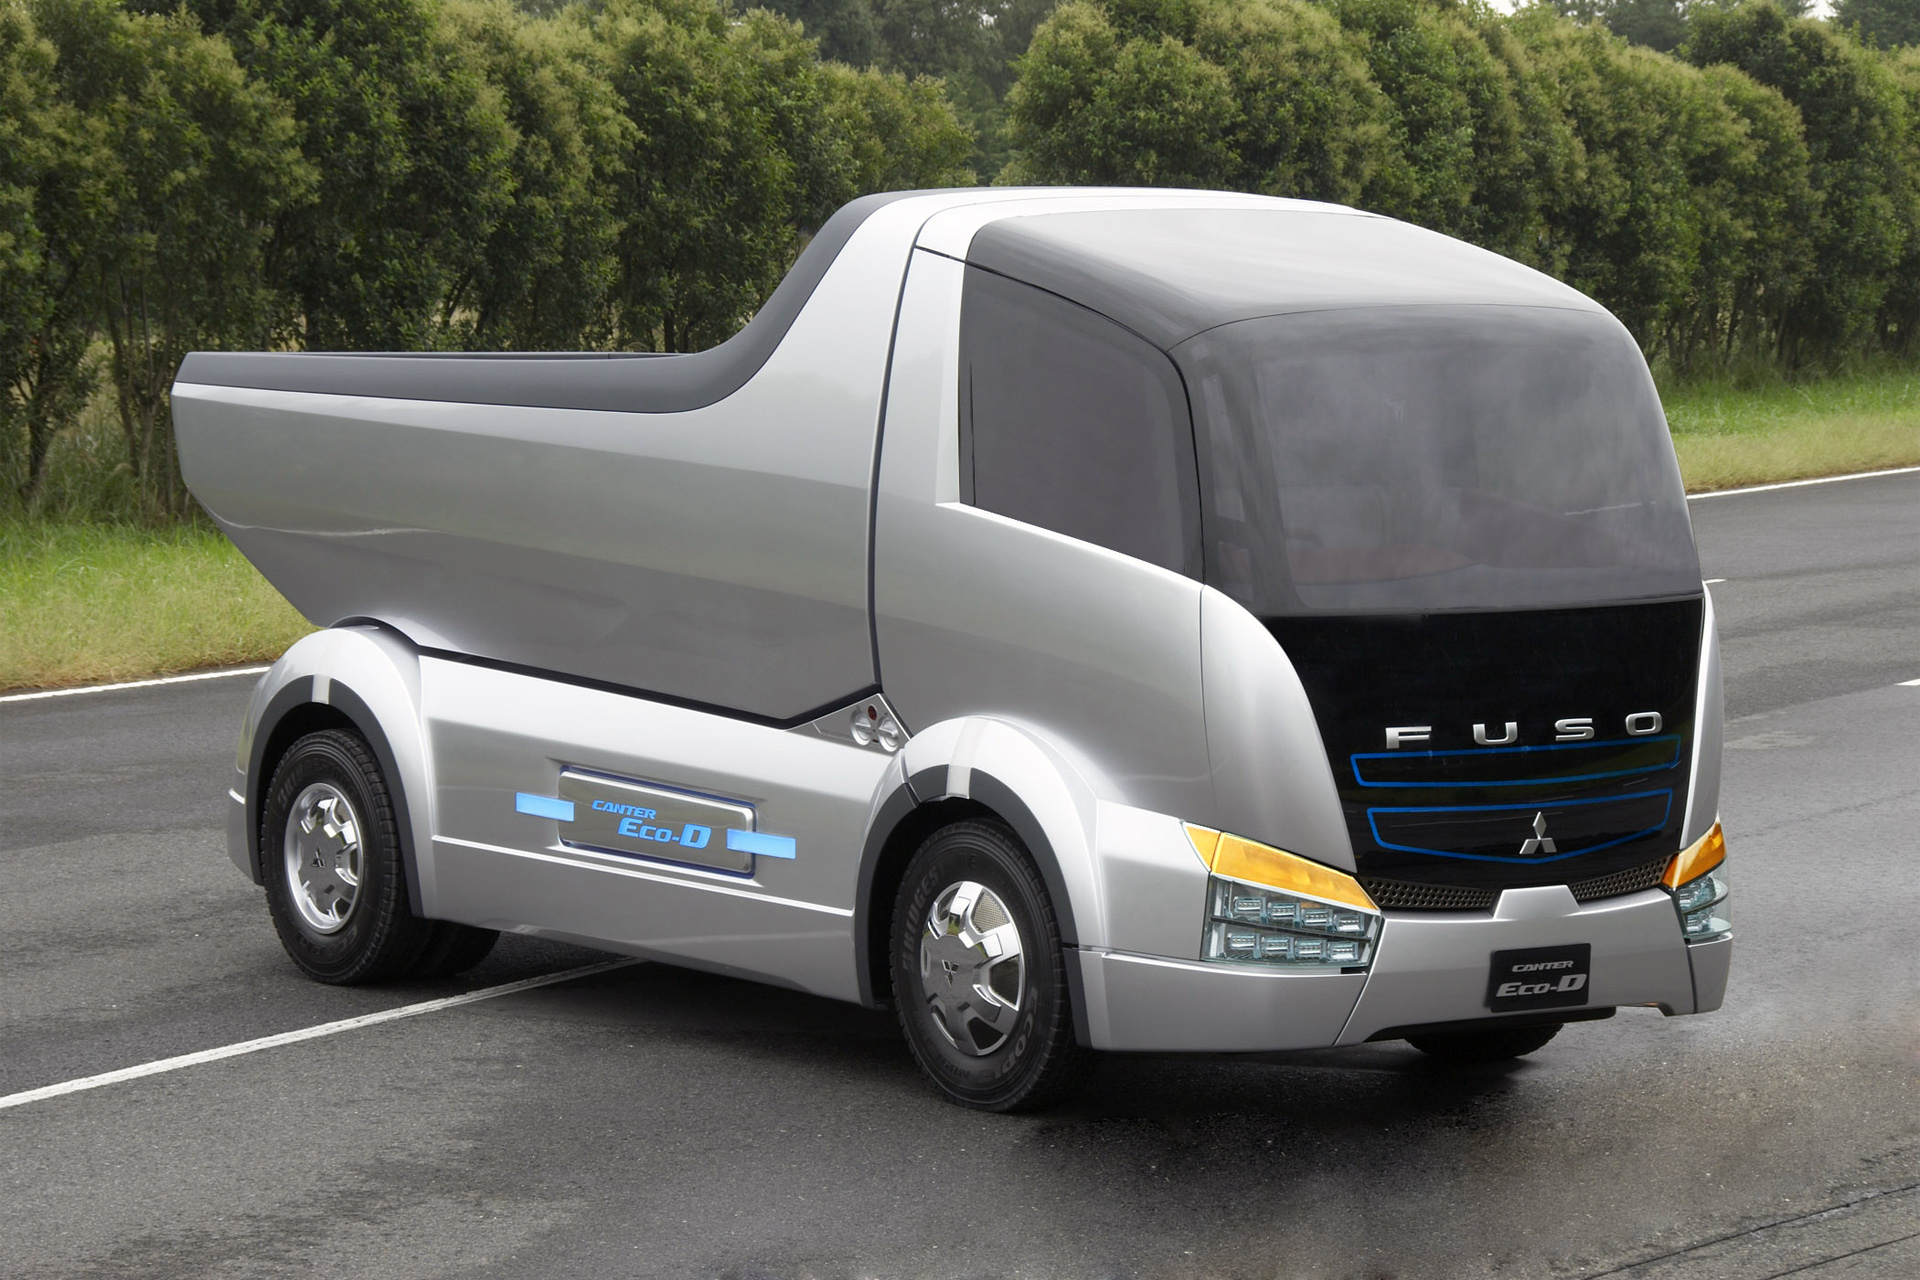 Fuso Canter Eco-D photos - PhotoGallery with 4 pics| CarsBase.com